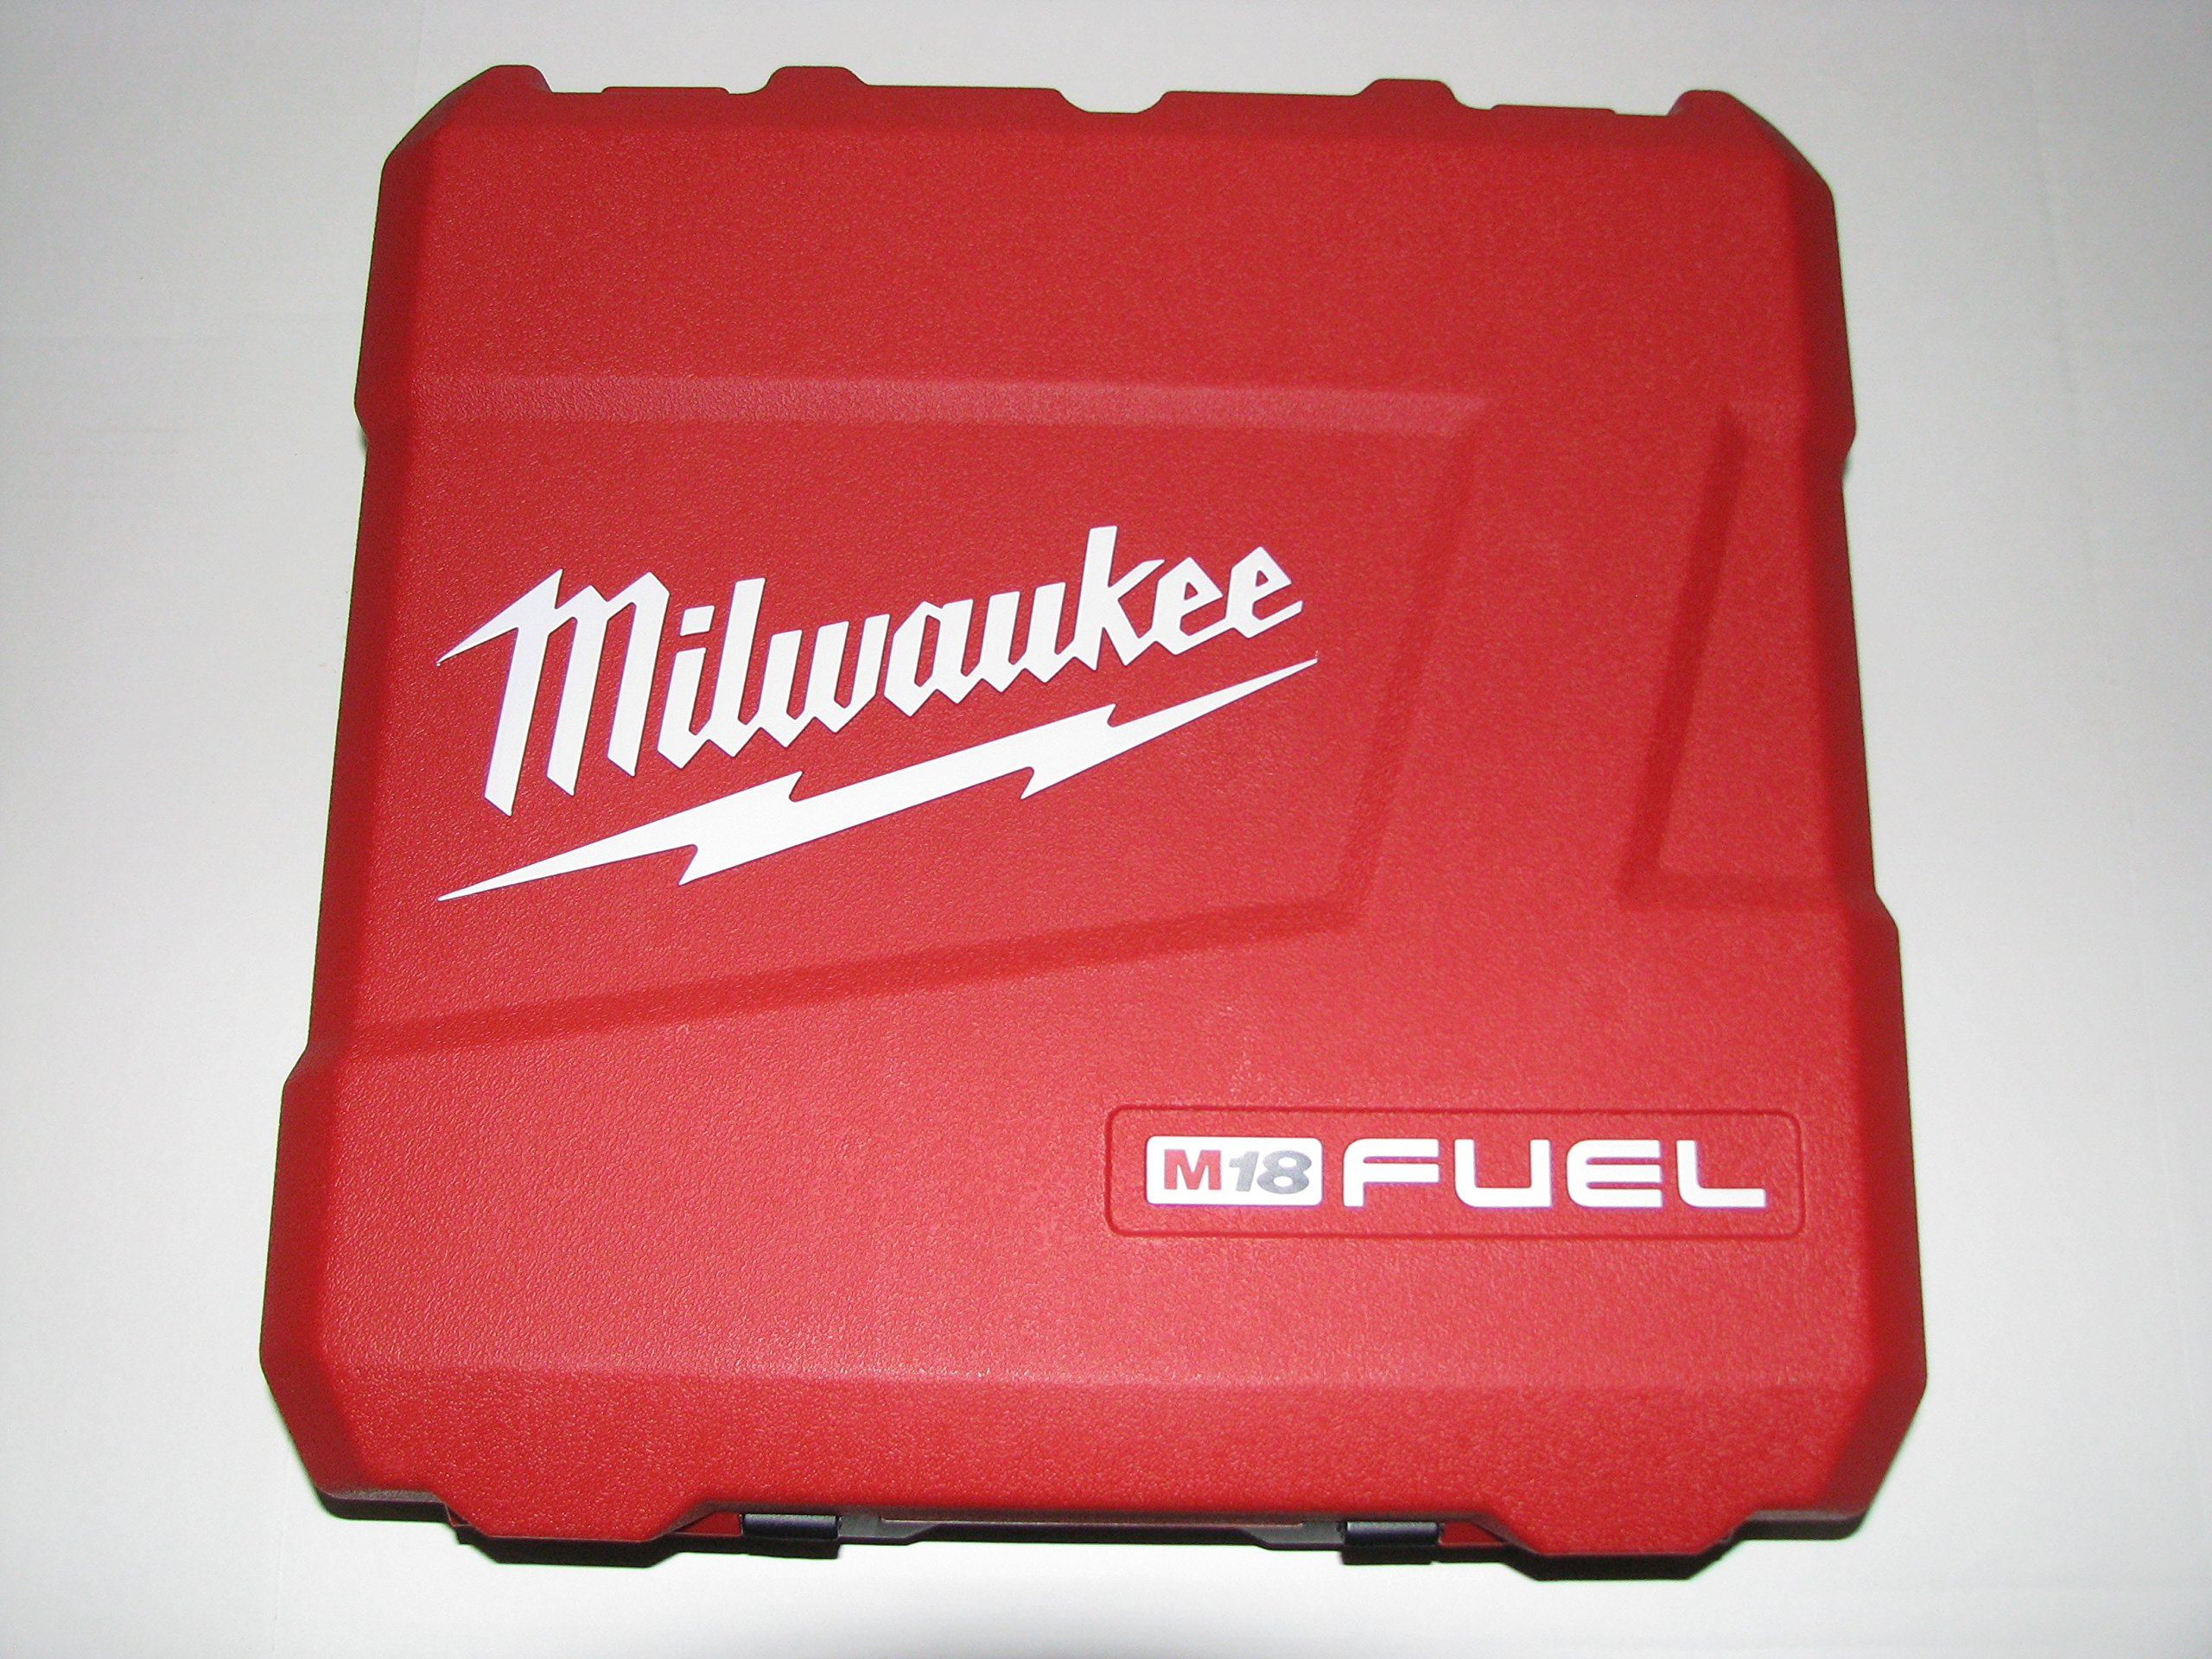 Milwaukee Heavy Duty Tool Case: Fits 2704-22; 2703-22; 2704-20; 2703-20 M18 Fuel Cordless Drill(Tool Case Only)